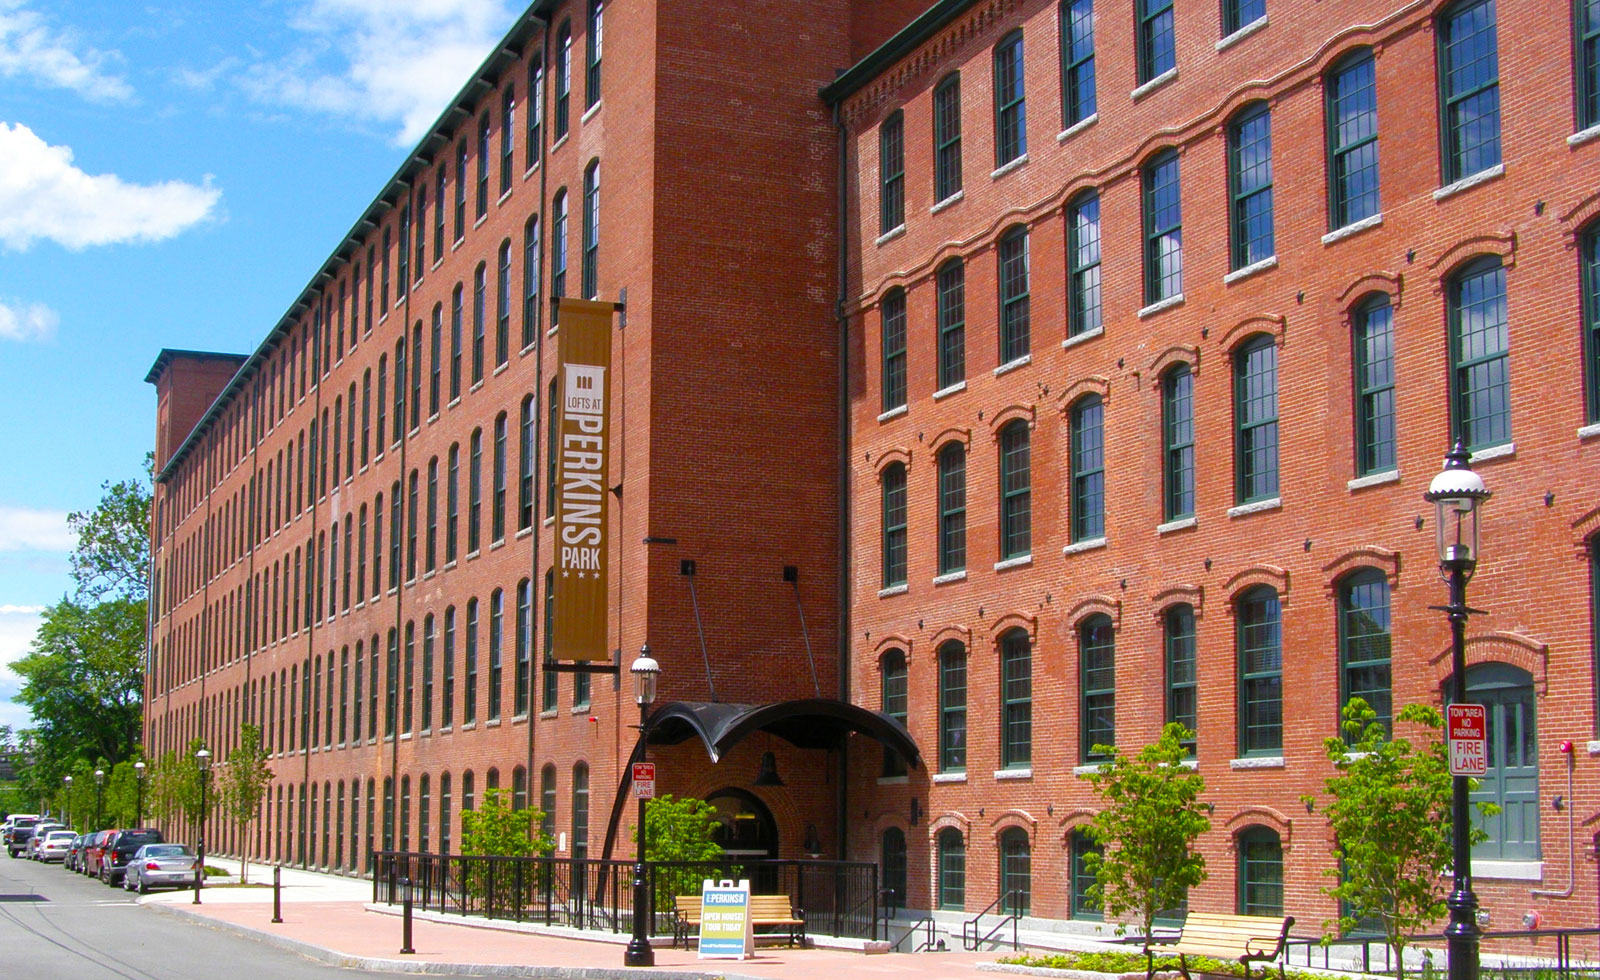 Lofts at Perkins Place view of building from the street